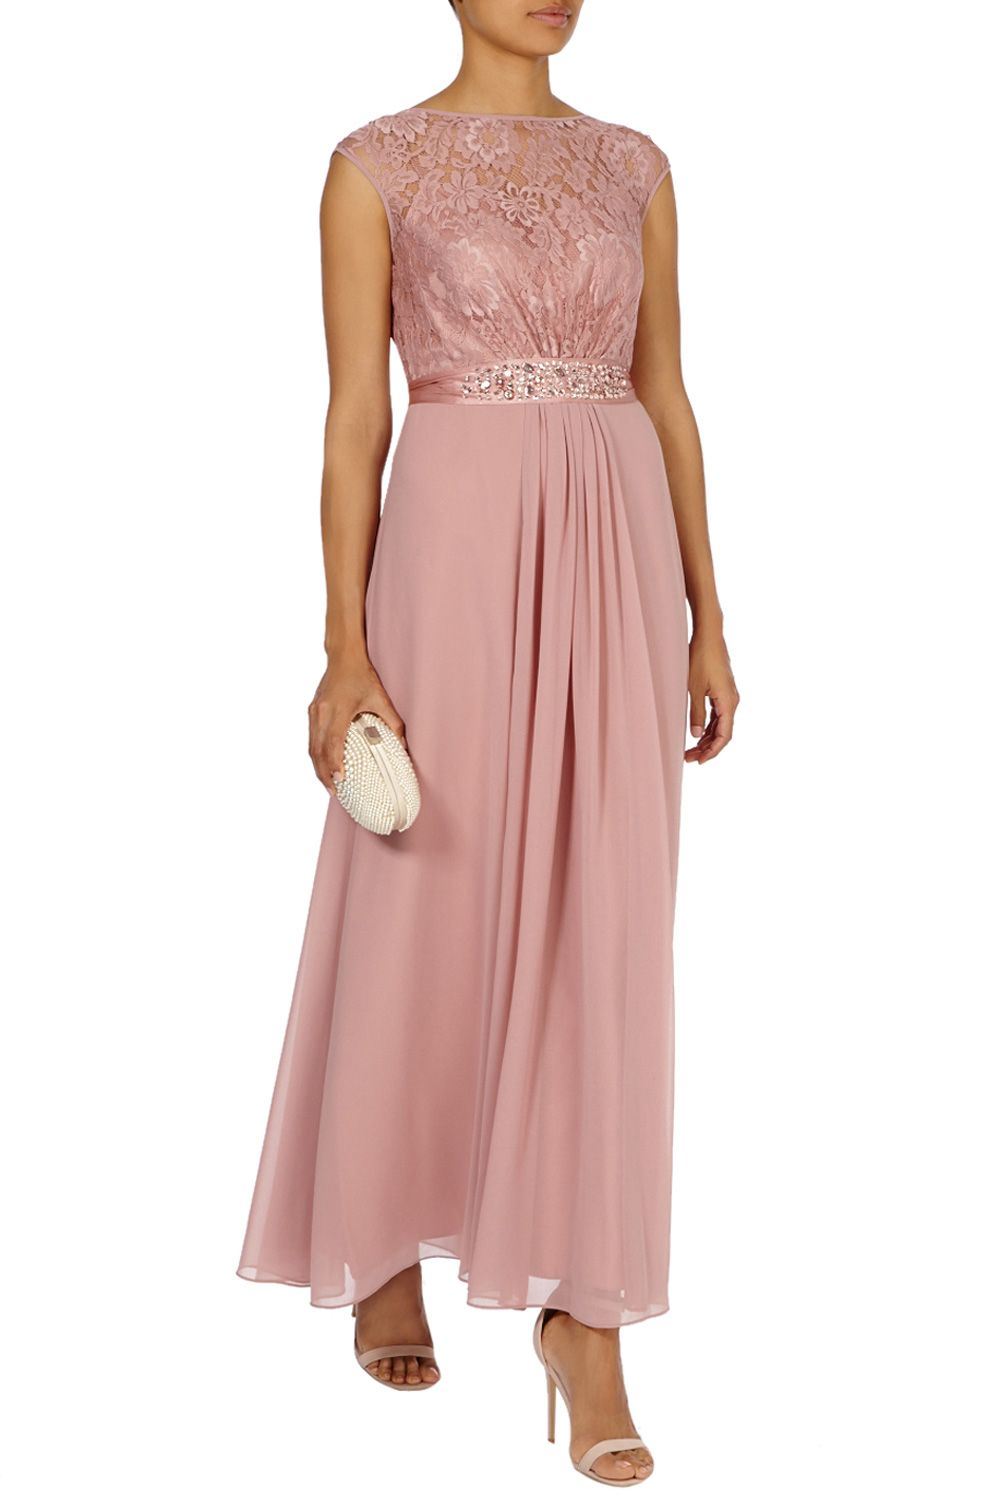 Bridesmaid Dresses & Outfits | Pinks LORI LEE LACE MAXI DRESS ...